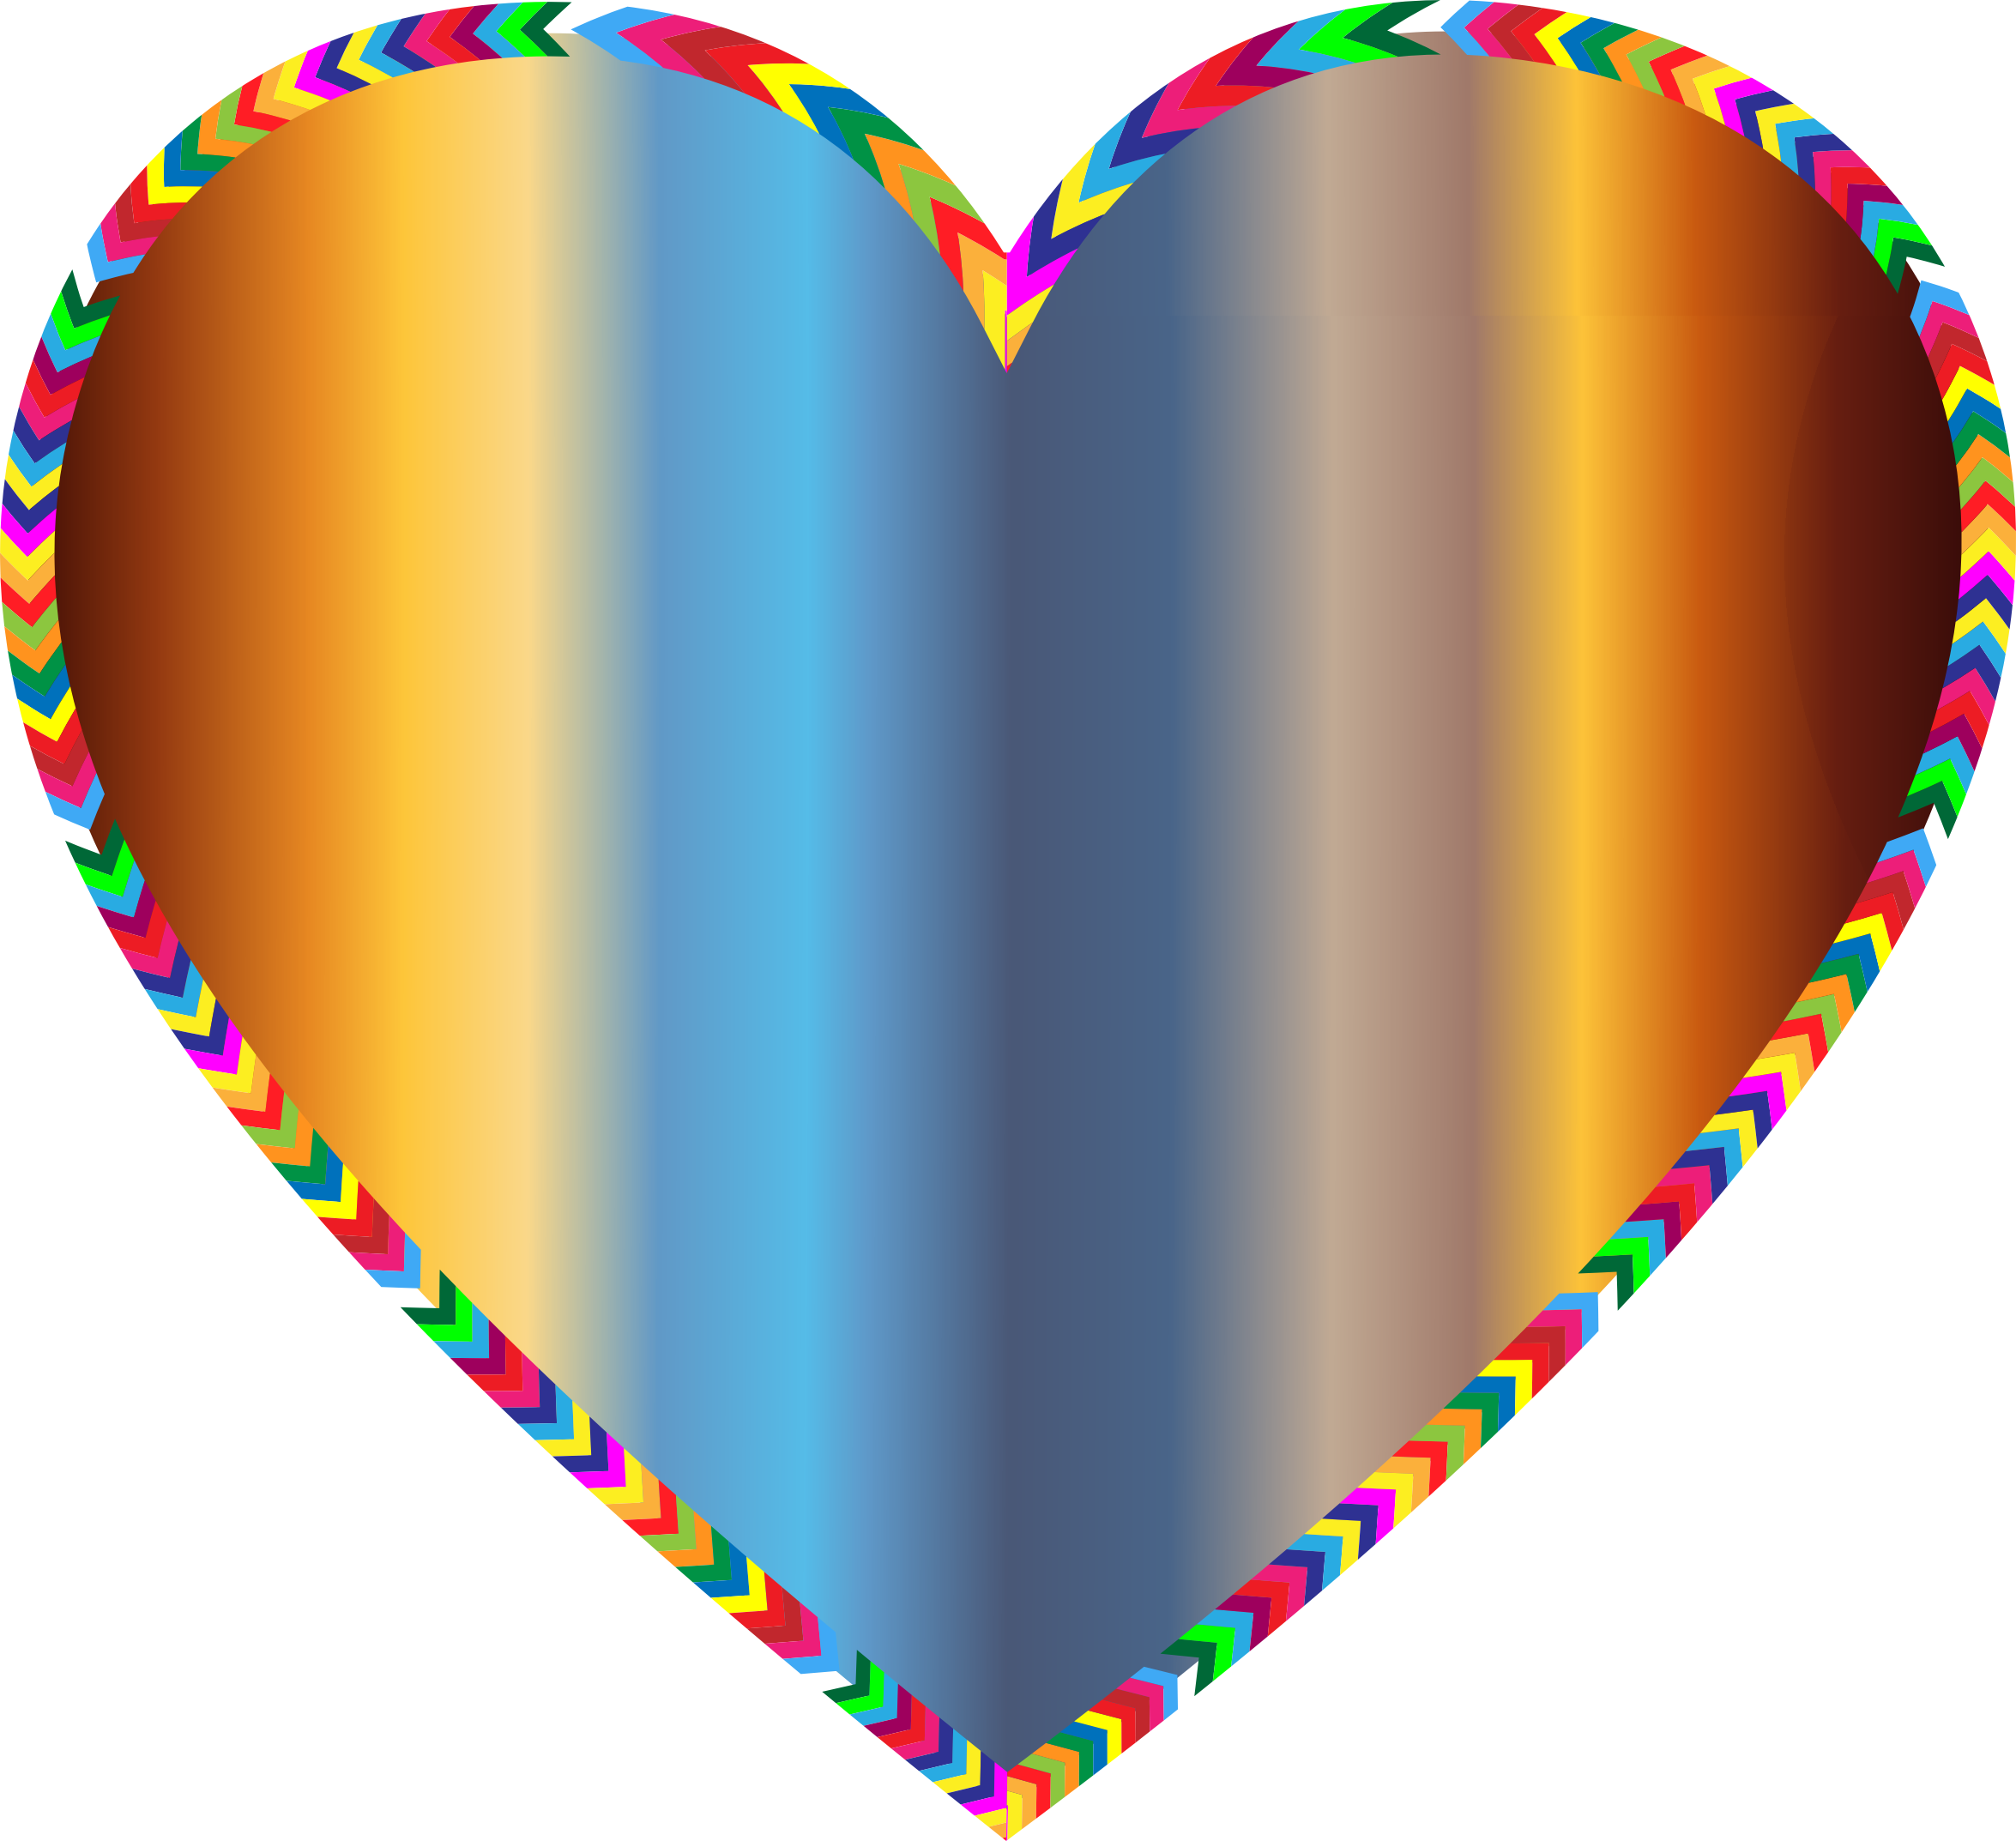 Multicolored Arrows Heart Filled 5 by GDJ